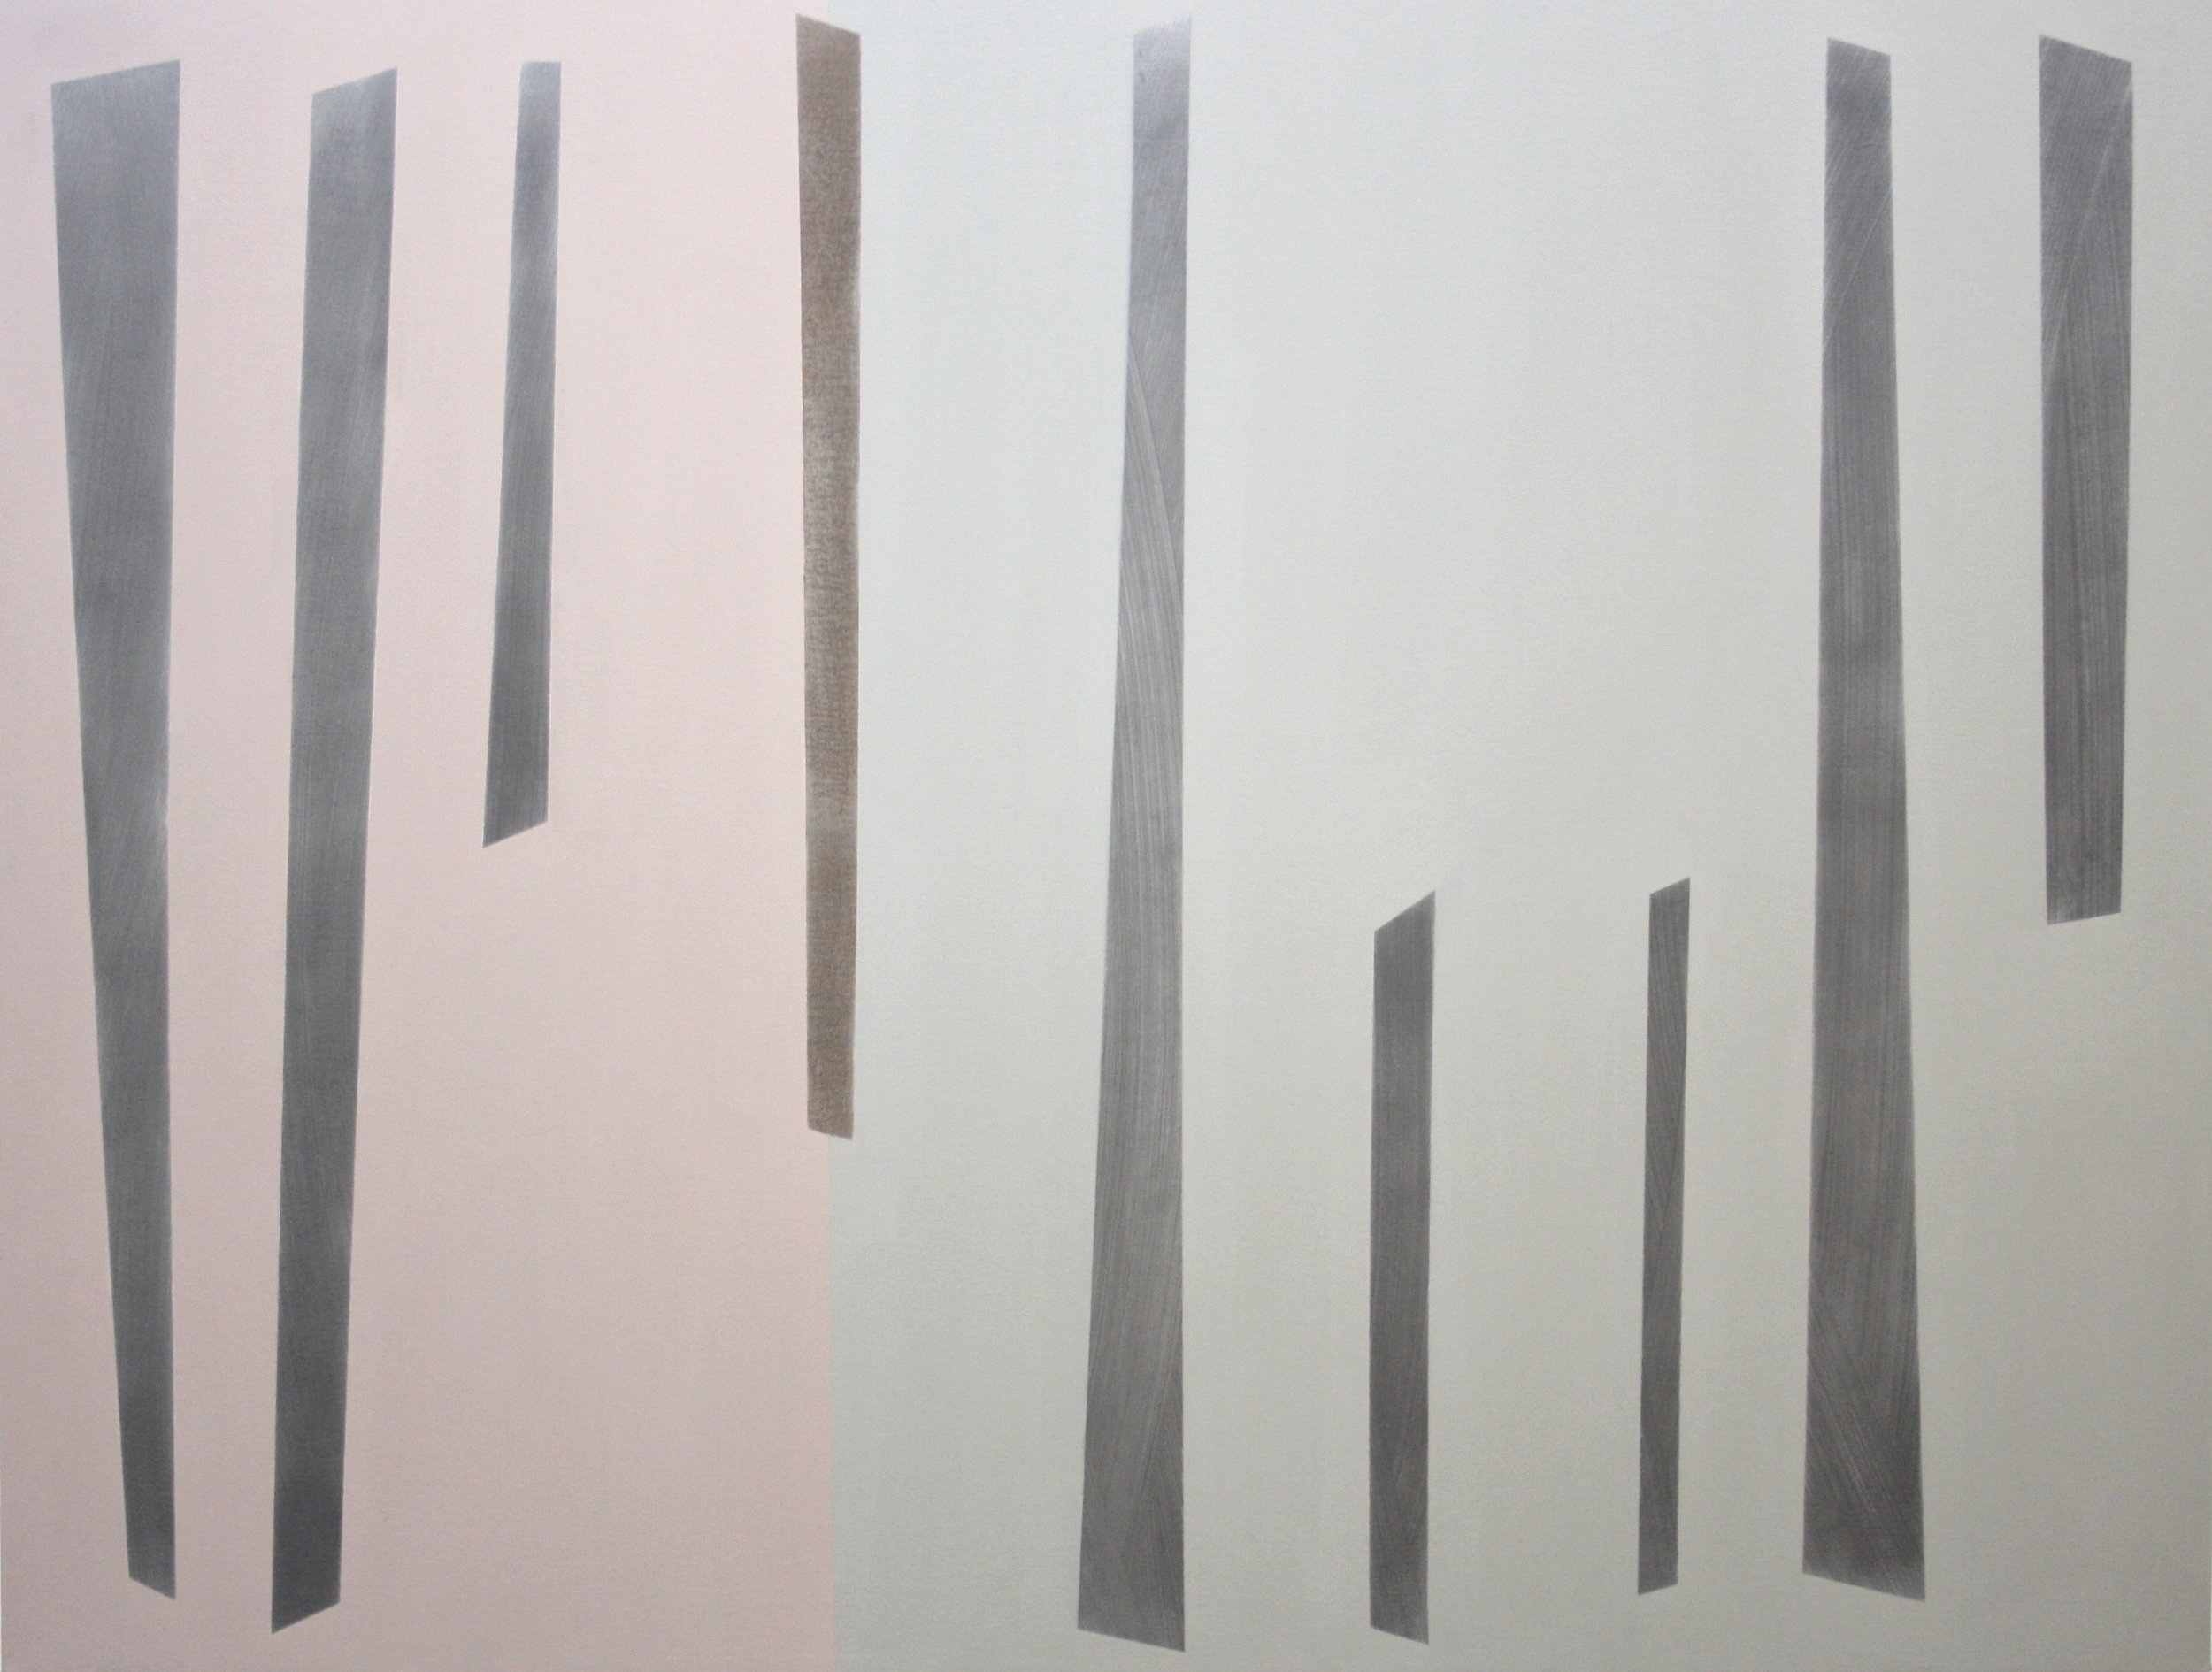 San Romano, 2010, acrylic and graphite on canvas, 84 x 110cm